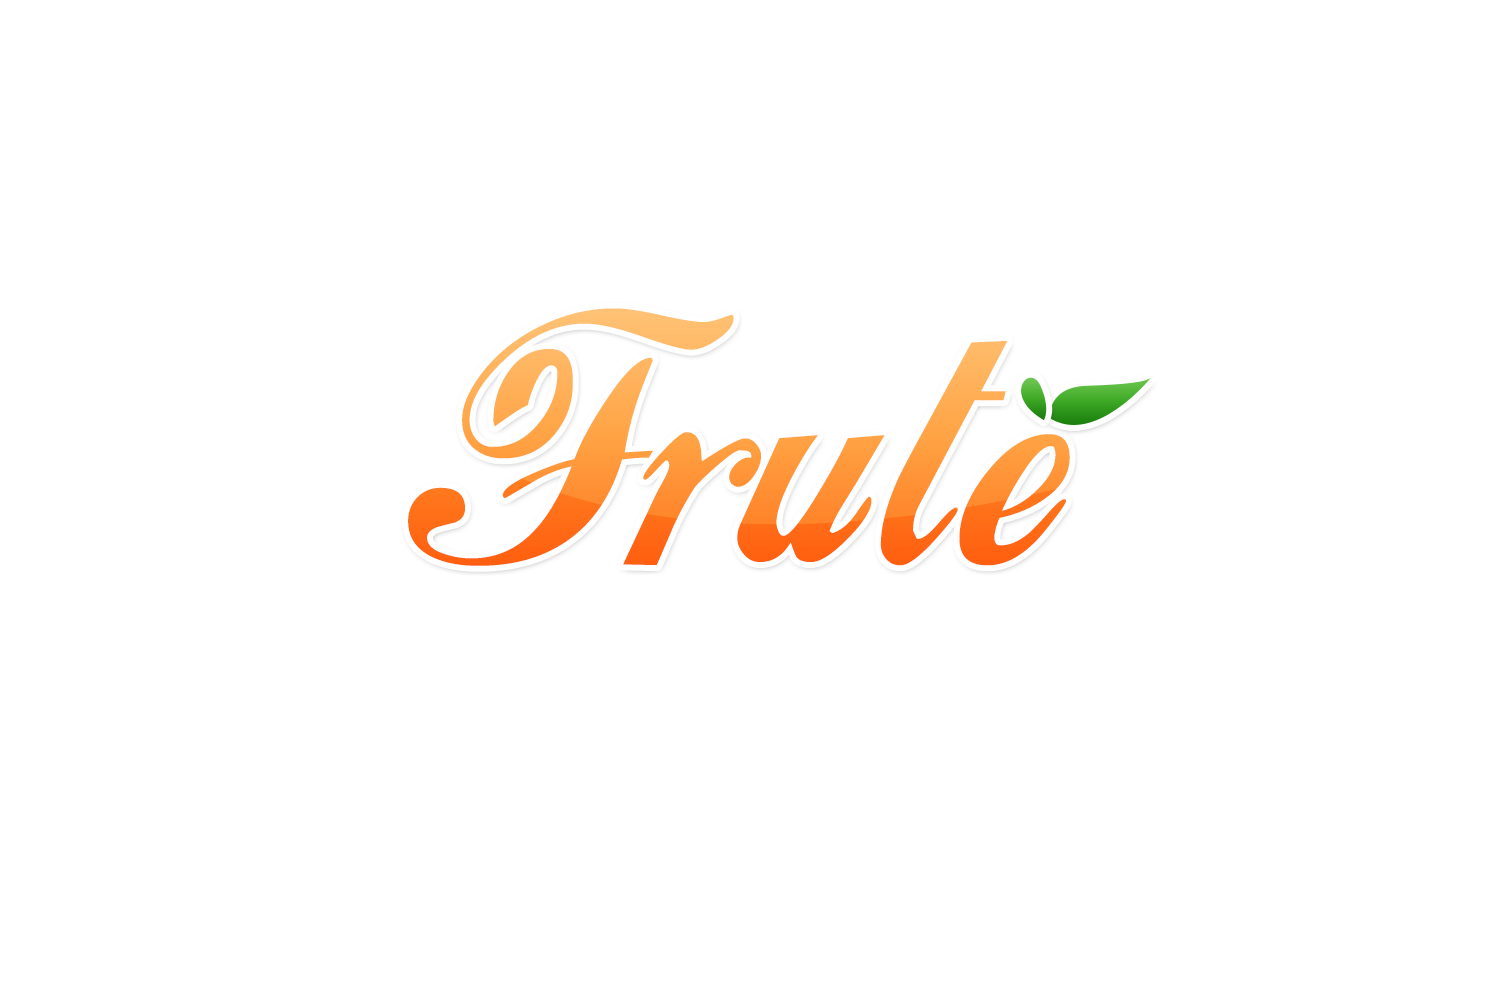 Logo Design by Jep Knopz - Entry No. 53 in the Logo Design Contest Imaginative Logo Design for Fruté.